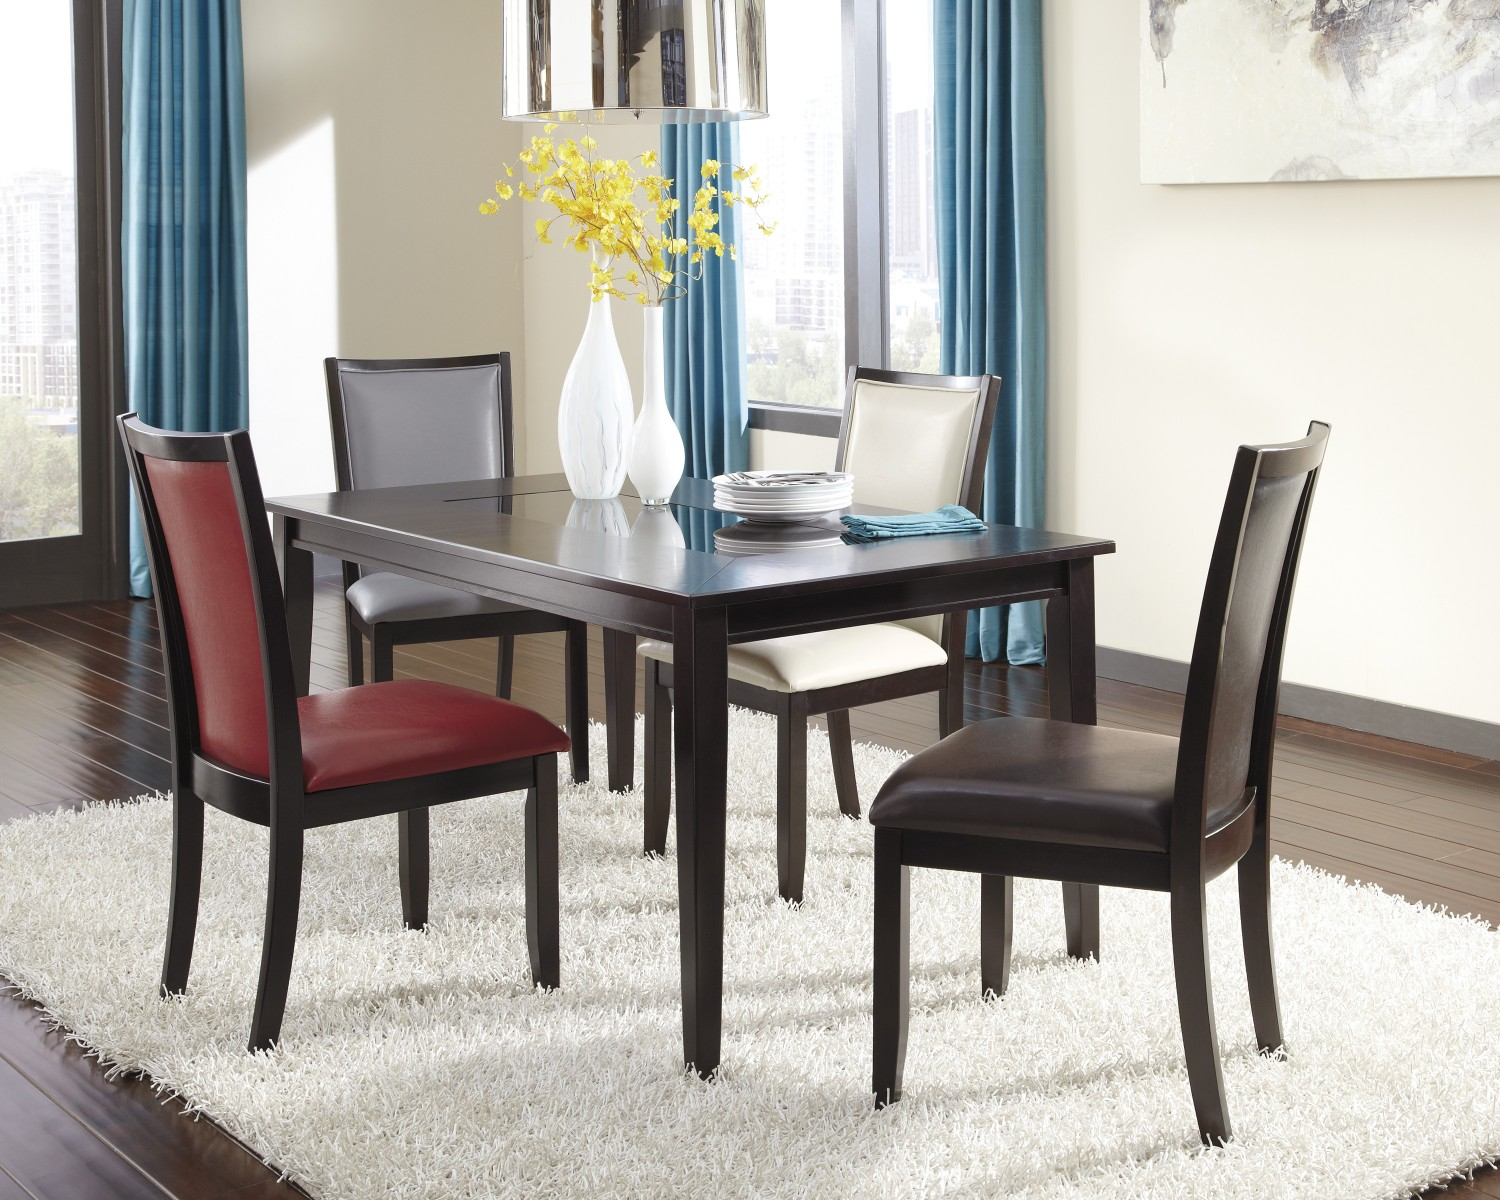 Dining Room Chairs: How to Mix and Match | Ashley Furniture